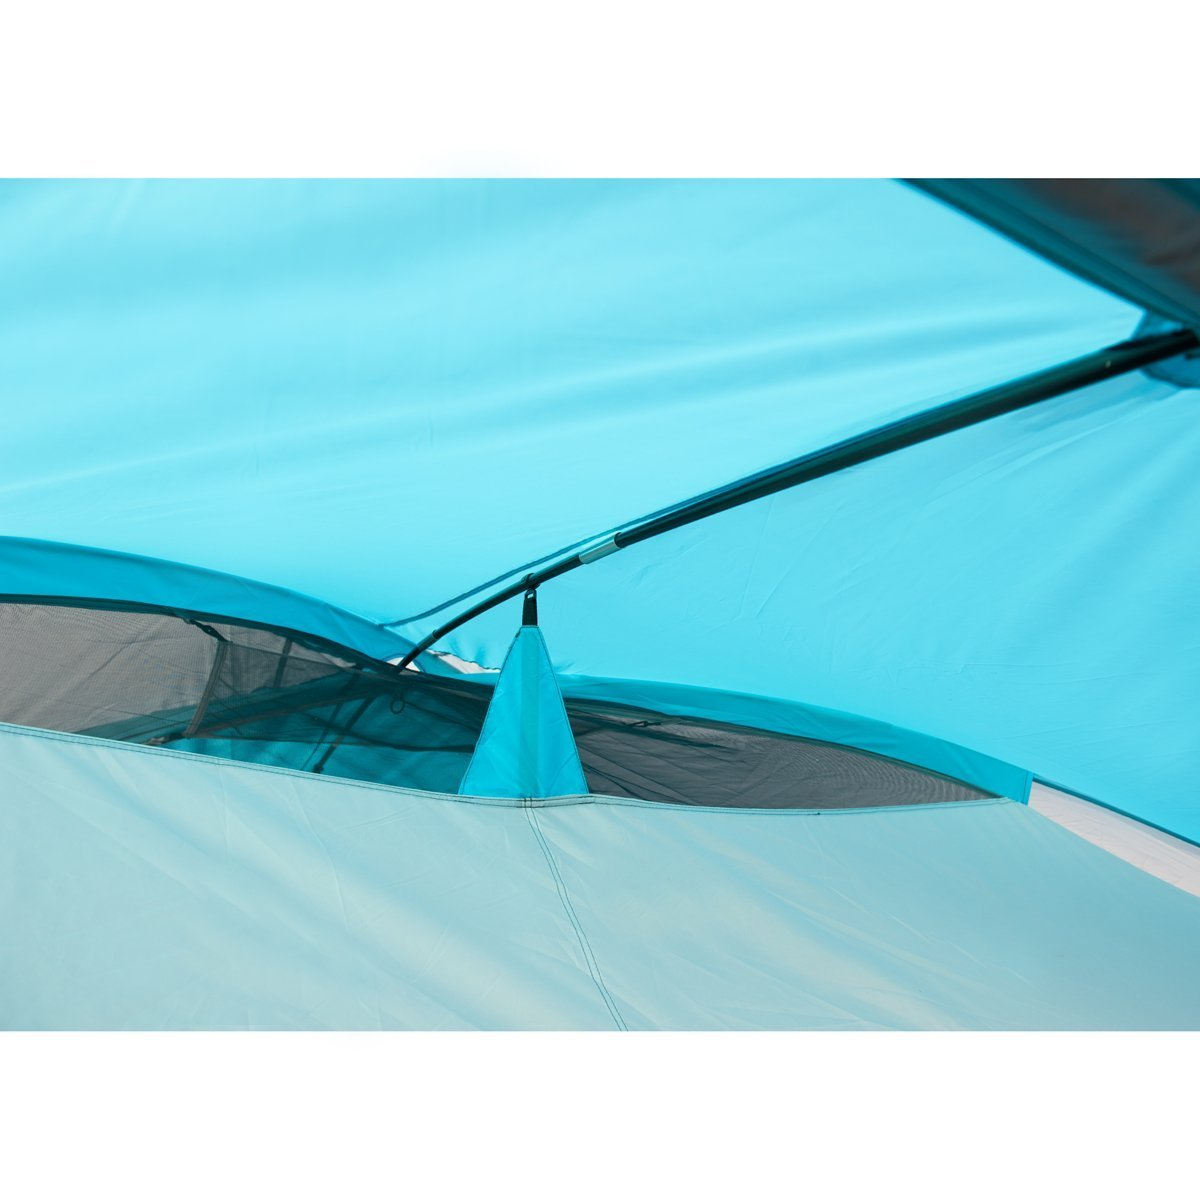 Timber Ridge Large Family Tent for Camping with Carry Bag, 2 Rooms by Timber Ridge (Image #9)